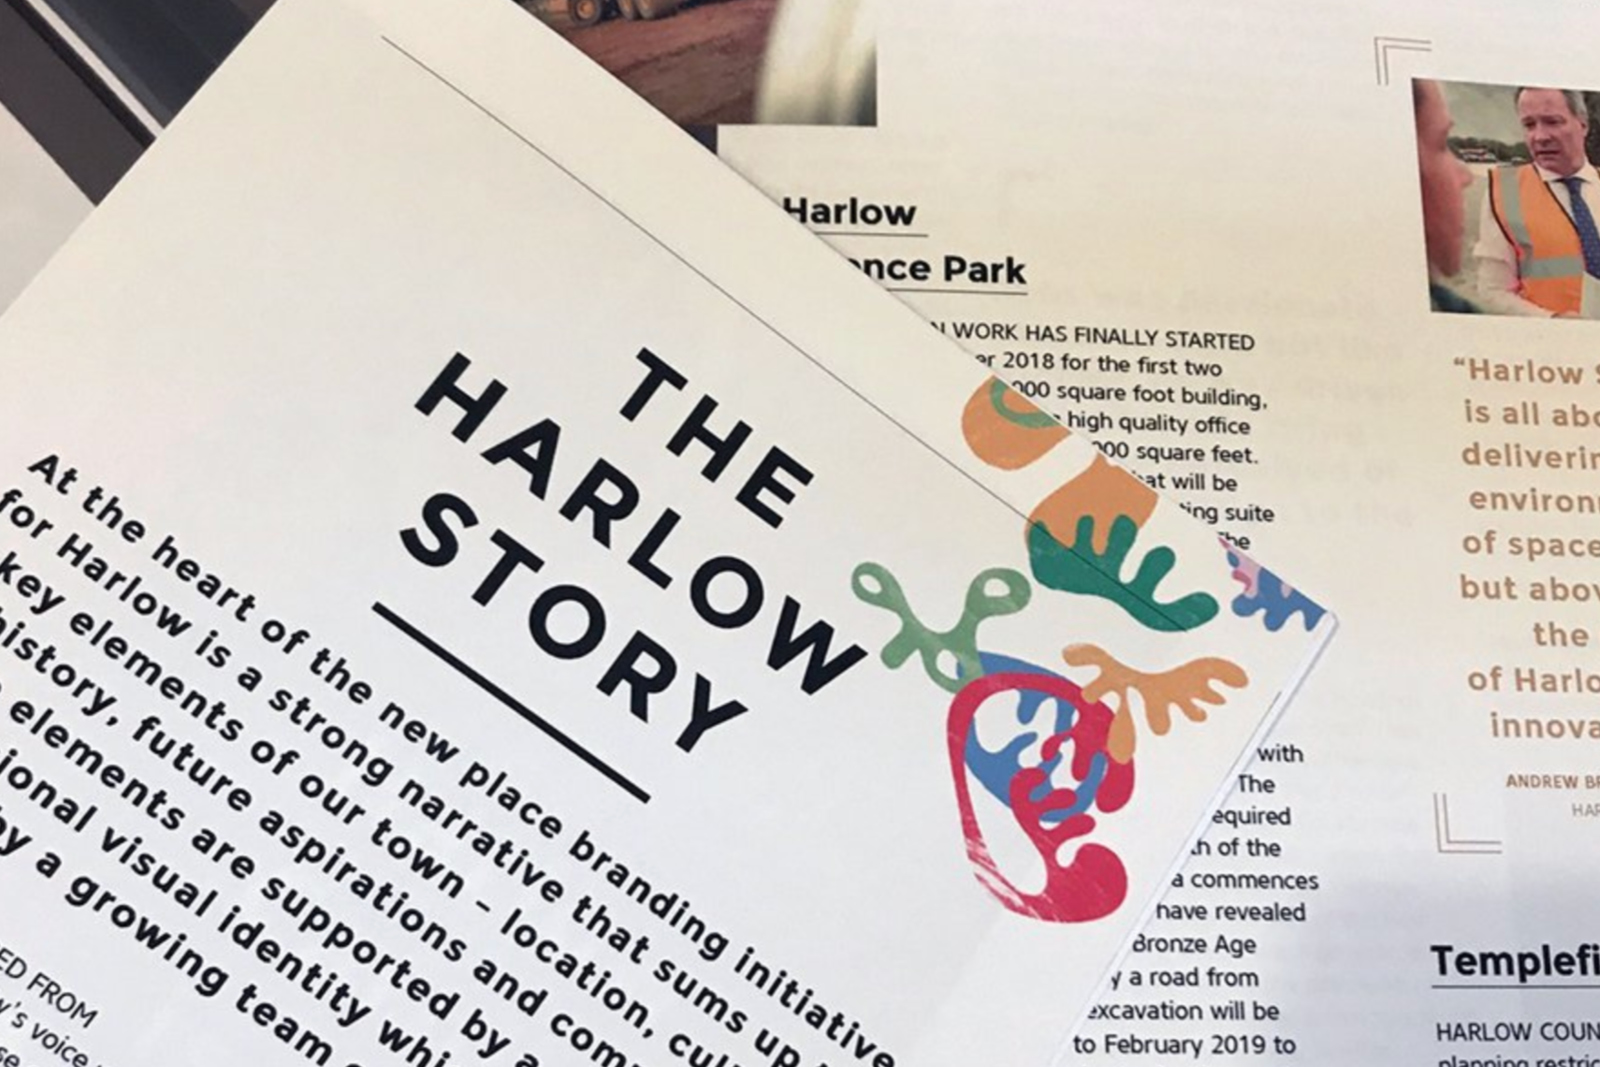 Harlow Stories: Issue 07. Harlow District Chamber of Commerce magazine design and production in partnership with Magnificent Stuff, Harlow